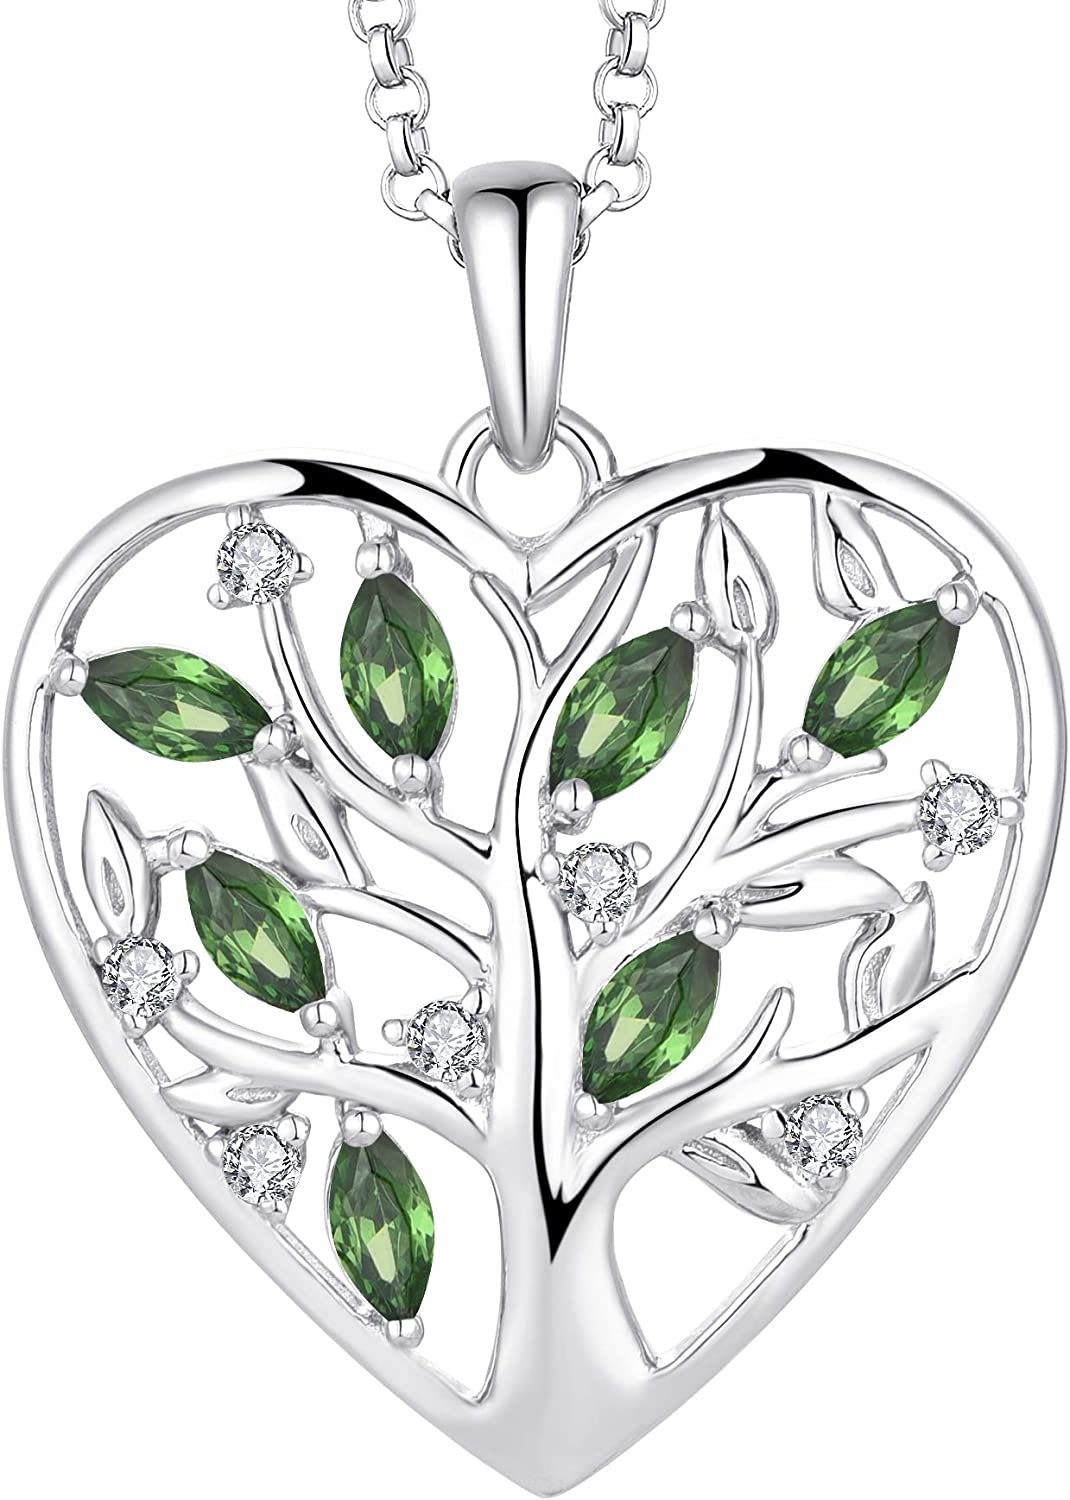 JO WISDOM Women Heart Necklace 925 Silver Ranking TOP9 Limited Special Price of Tree Sterling Life